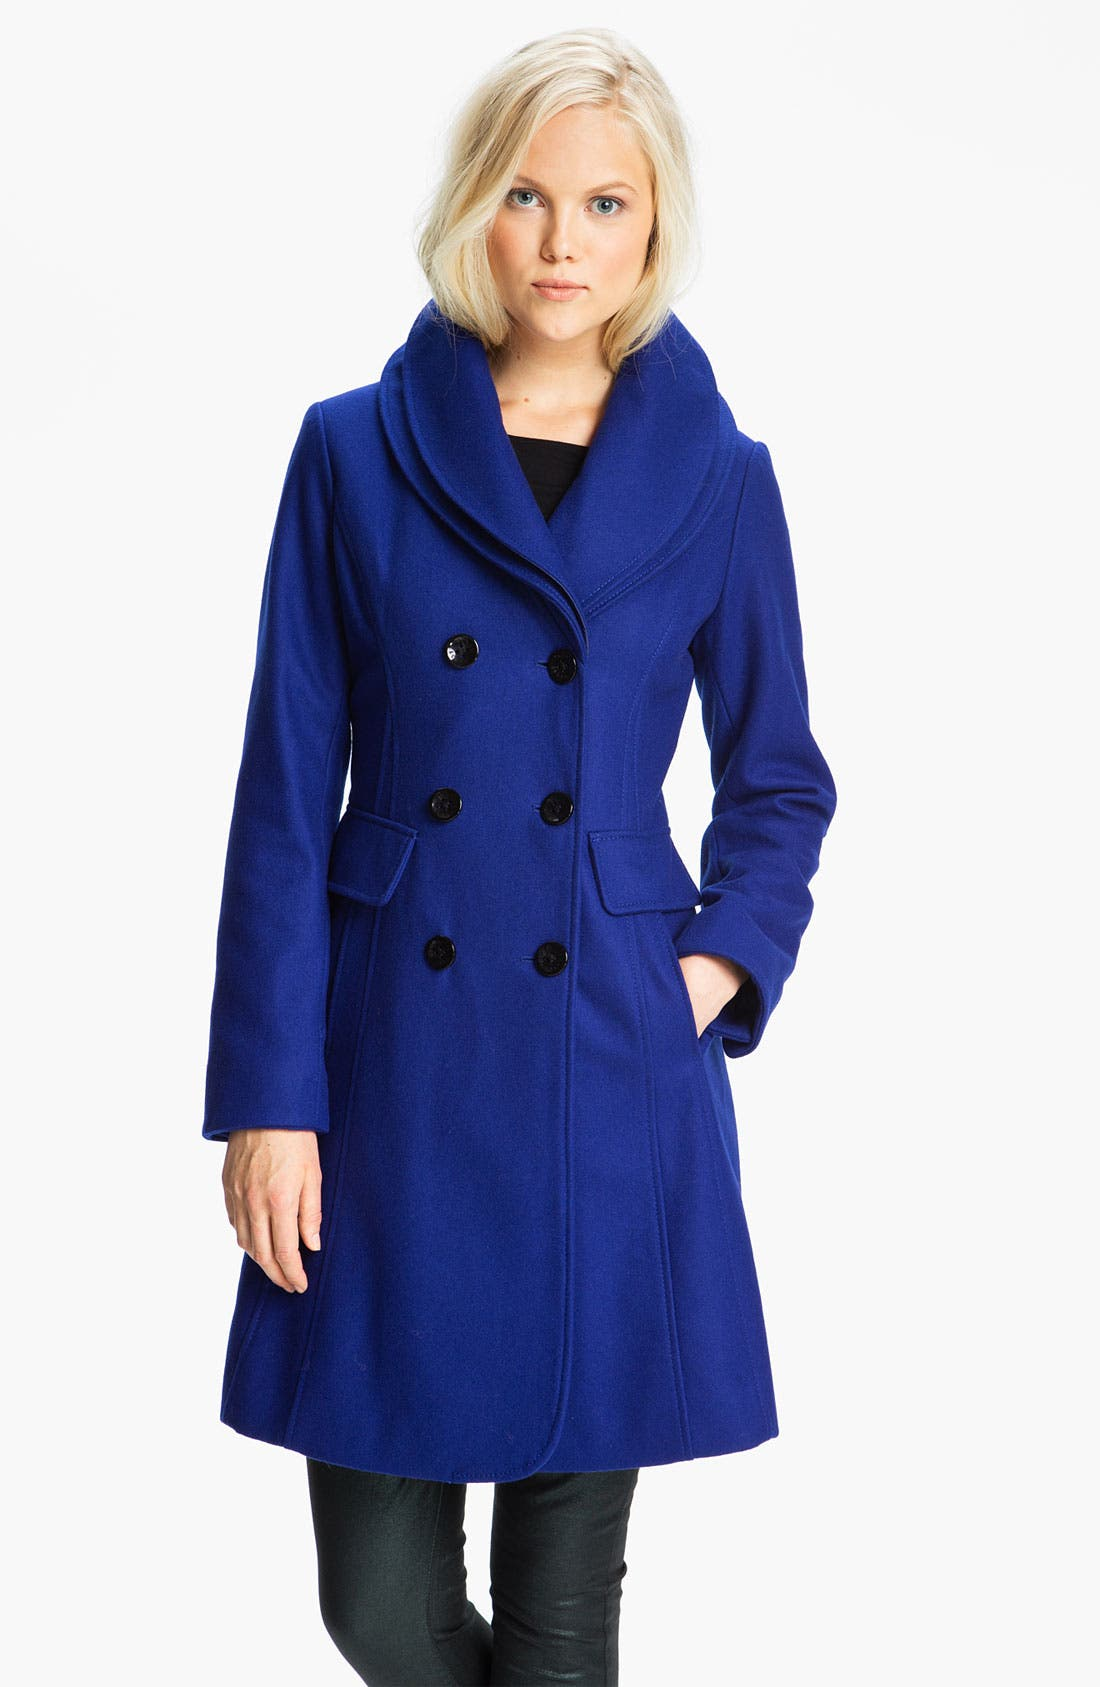 Alternate Image 1 Selected - GUESS Double Collar Coat (Online Exclusive)